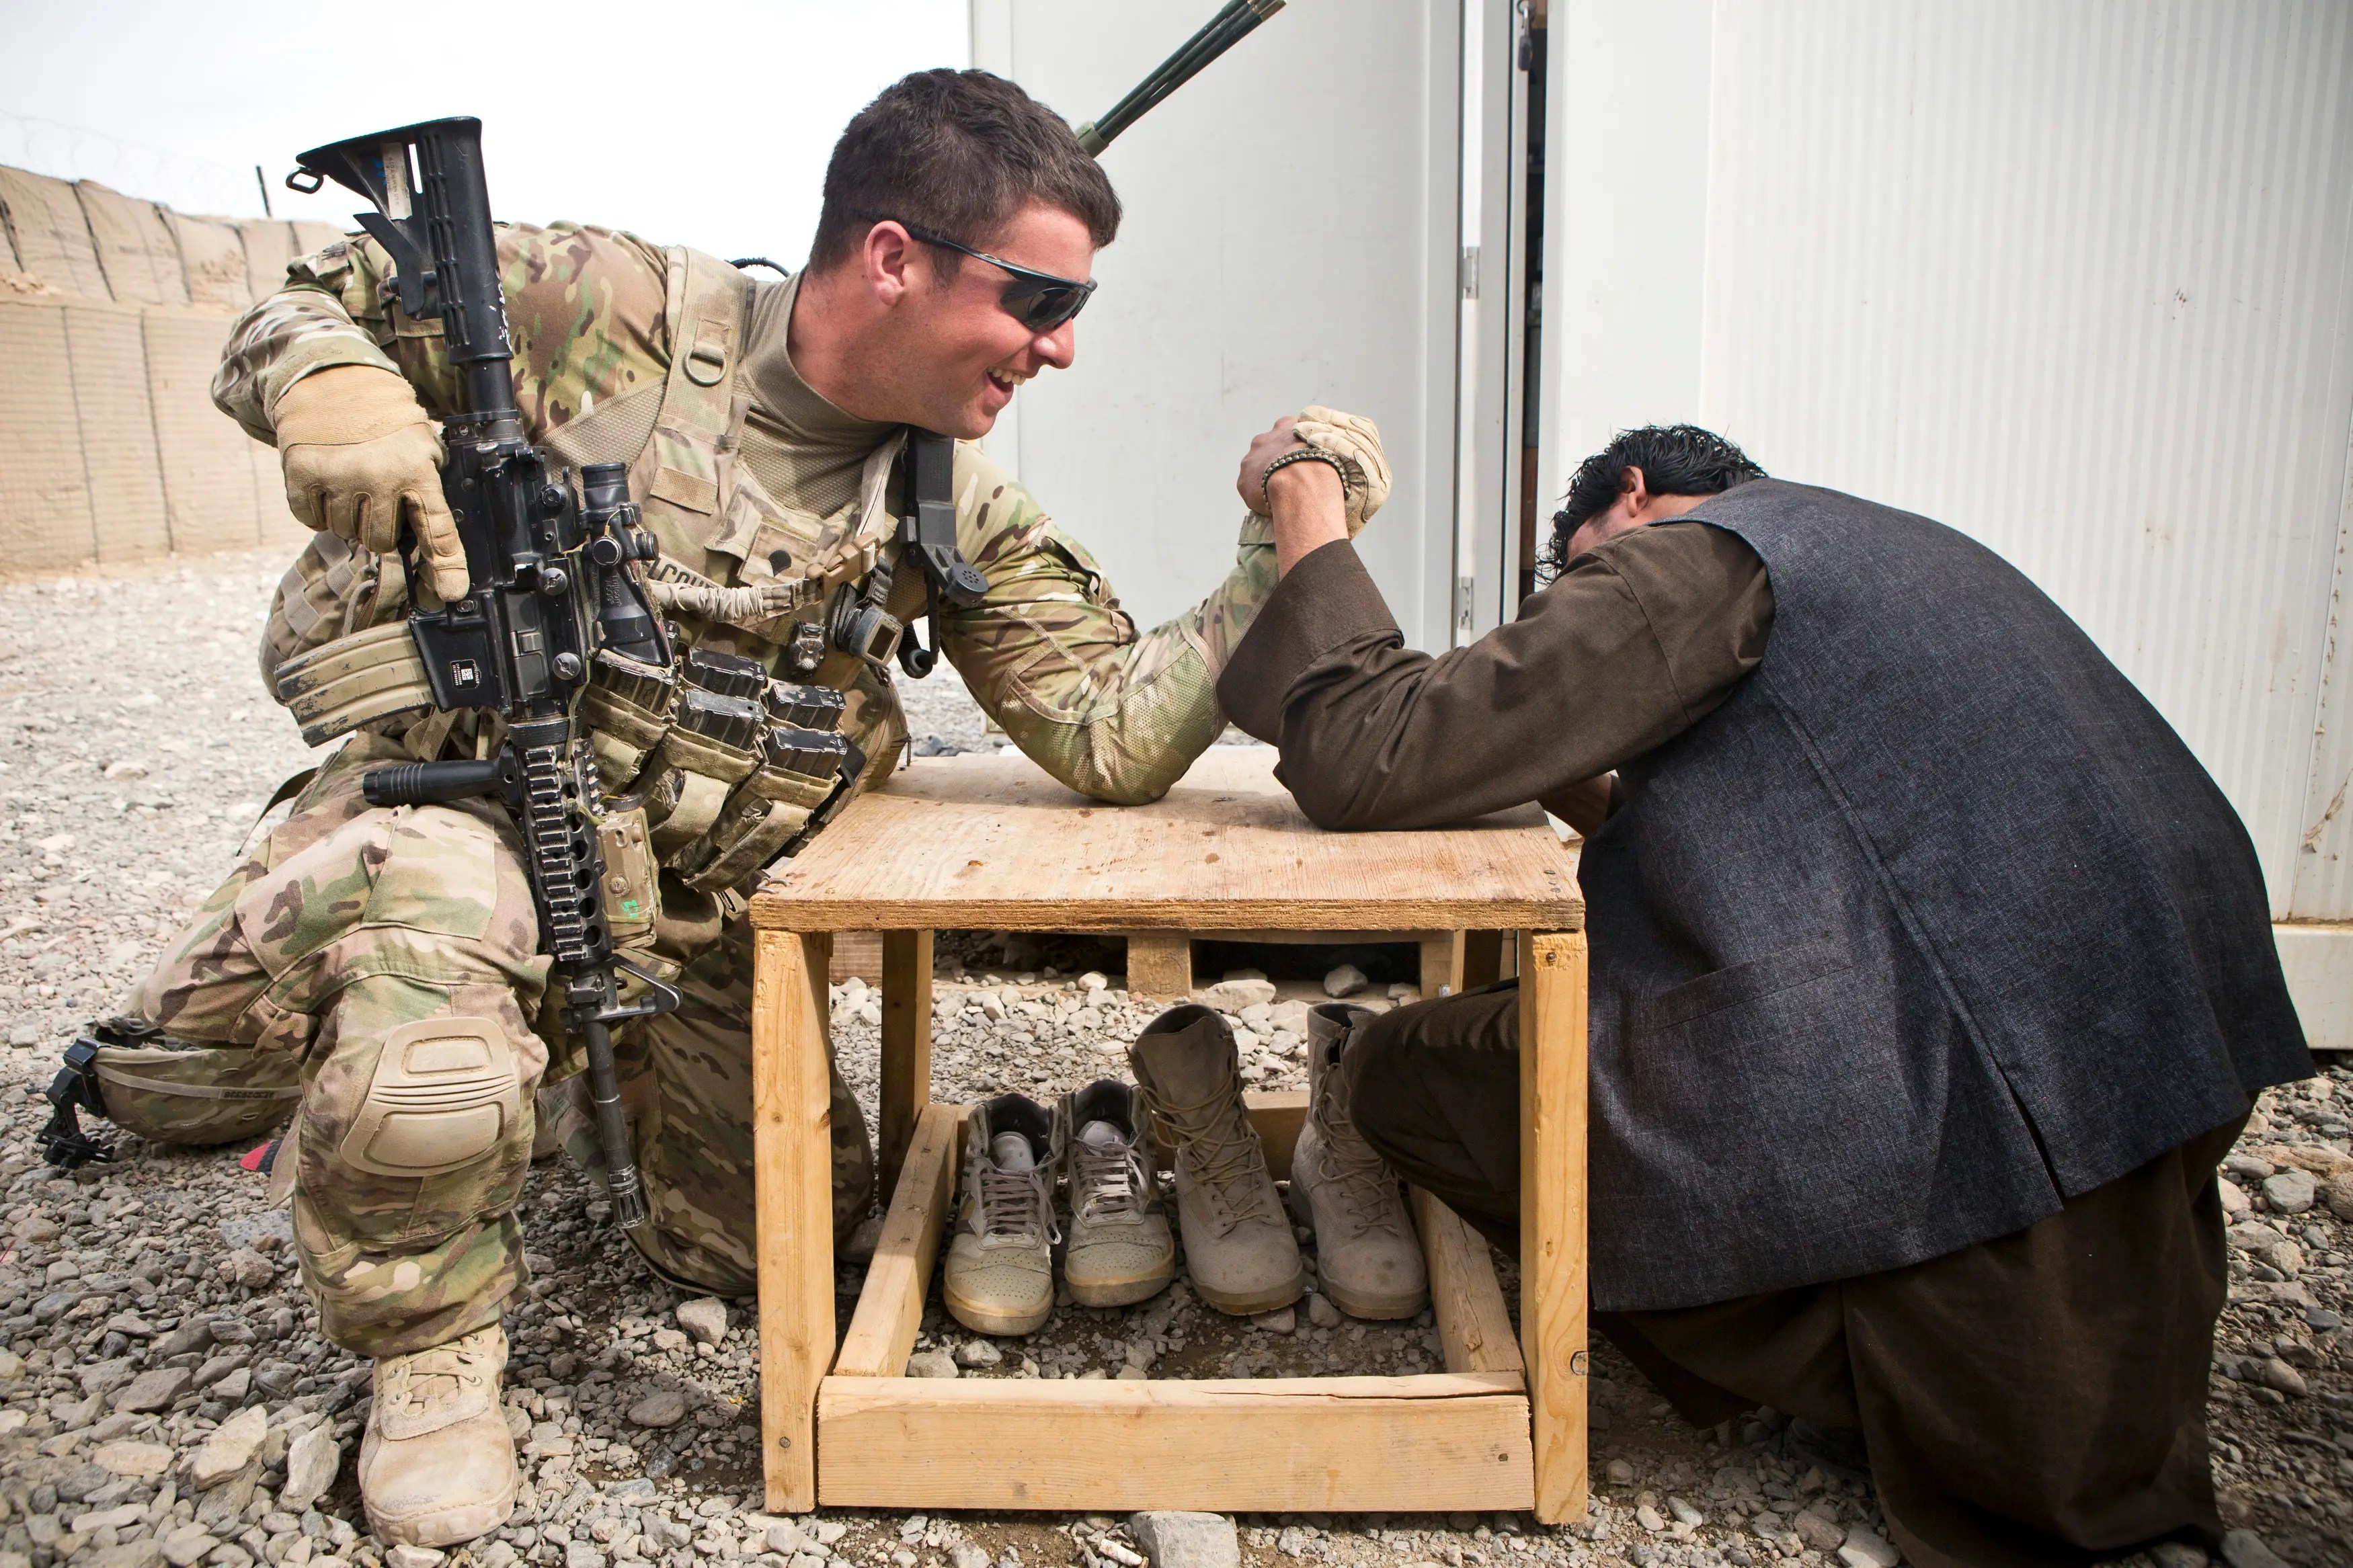 A US Army soldier and a member of the Afghan Uniform Police arm wrestle prior to a joint patrol near Command Outpost AJK (short for Azim-Jan-Kariz, a nearby village) in Maiwand District, Kandahar Province, Afghanistan, January 28, 2013.